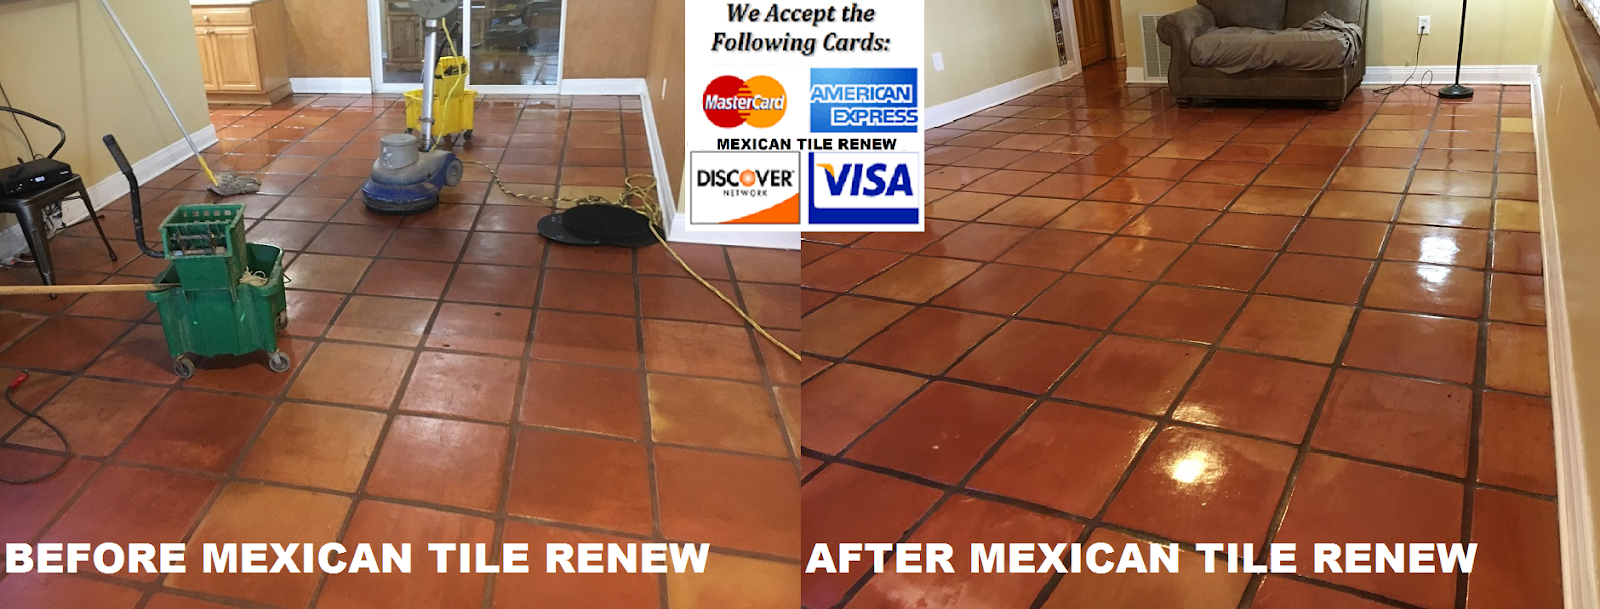 MEXICAN TILE RENEW: Clean Mexican-Saltillo Tile |Seal